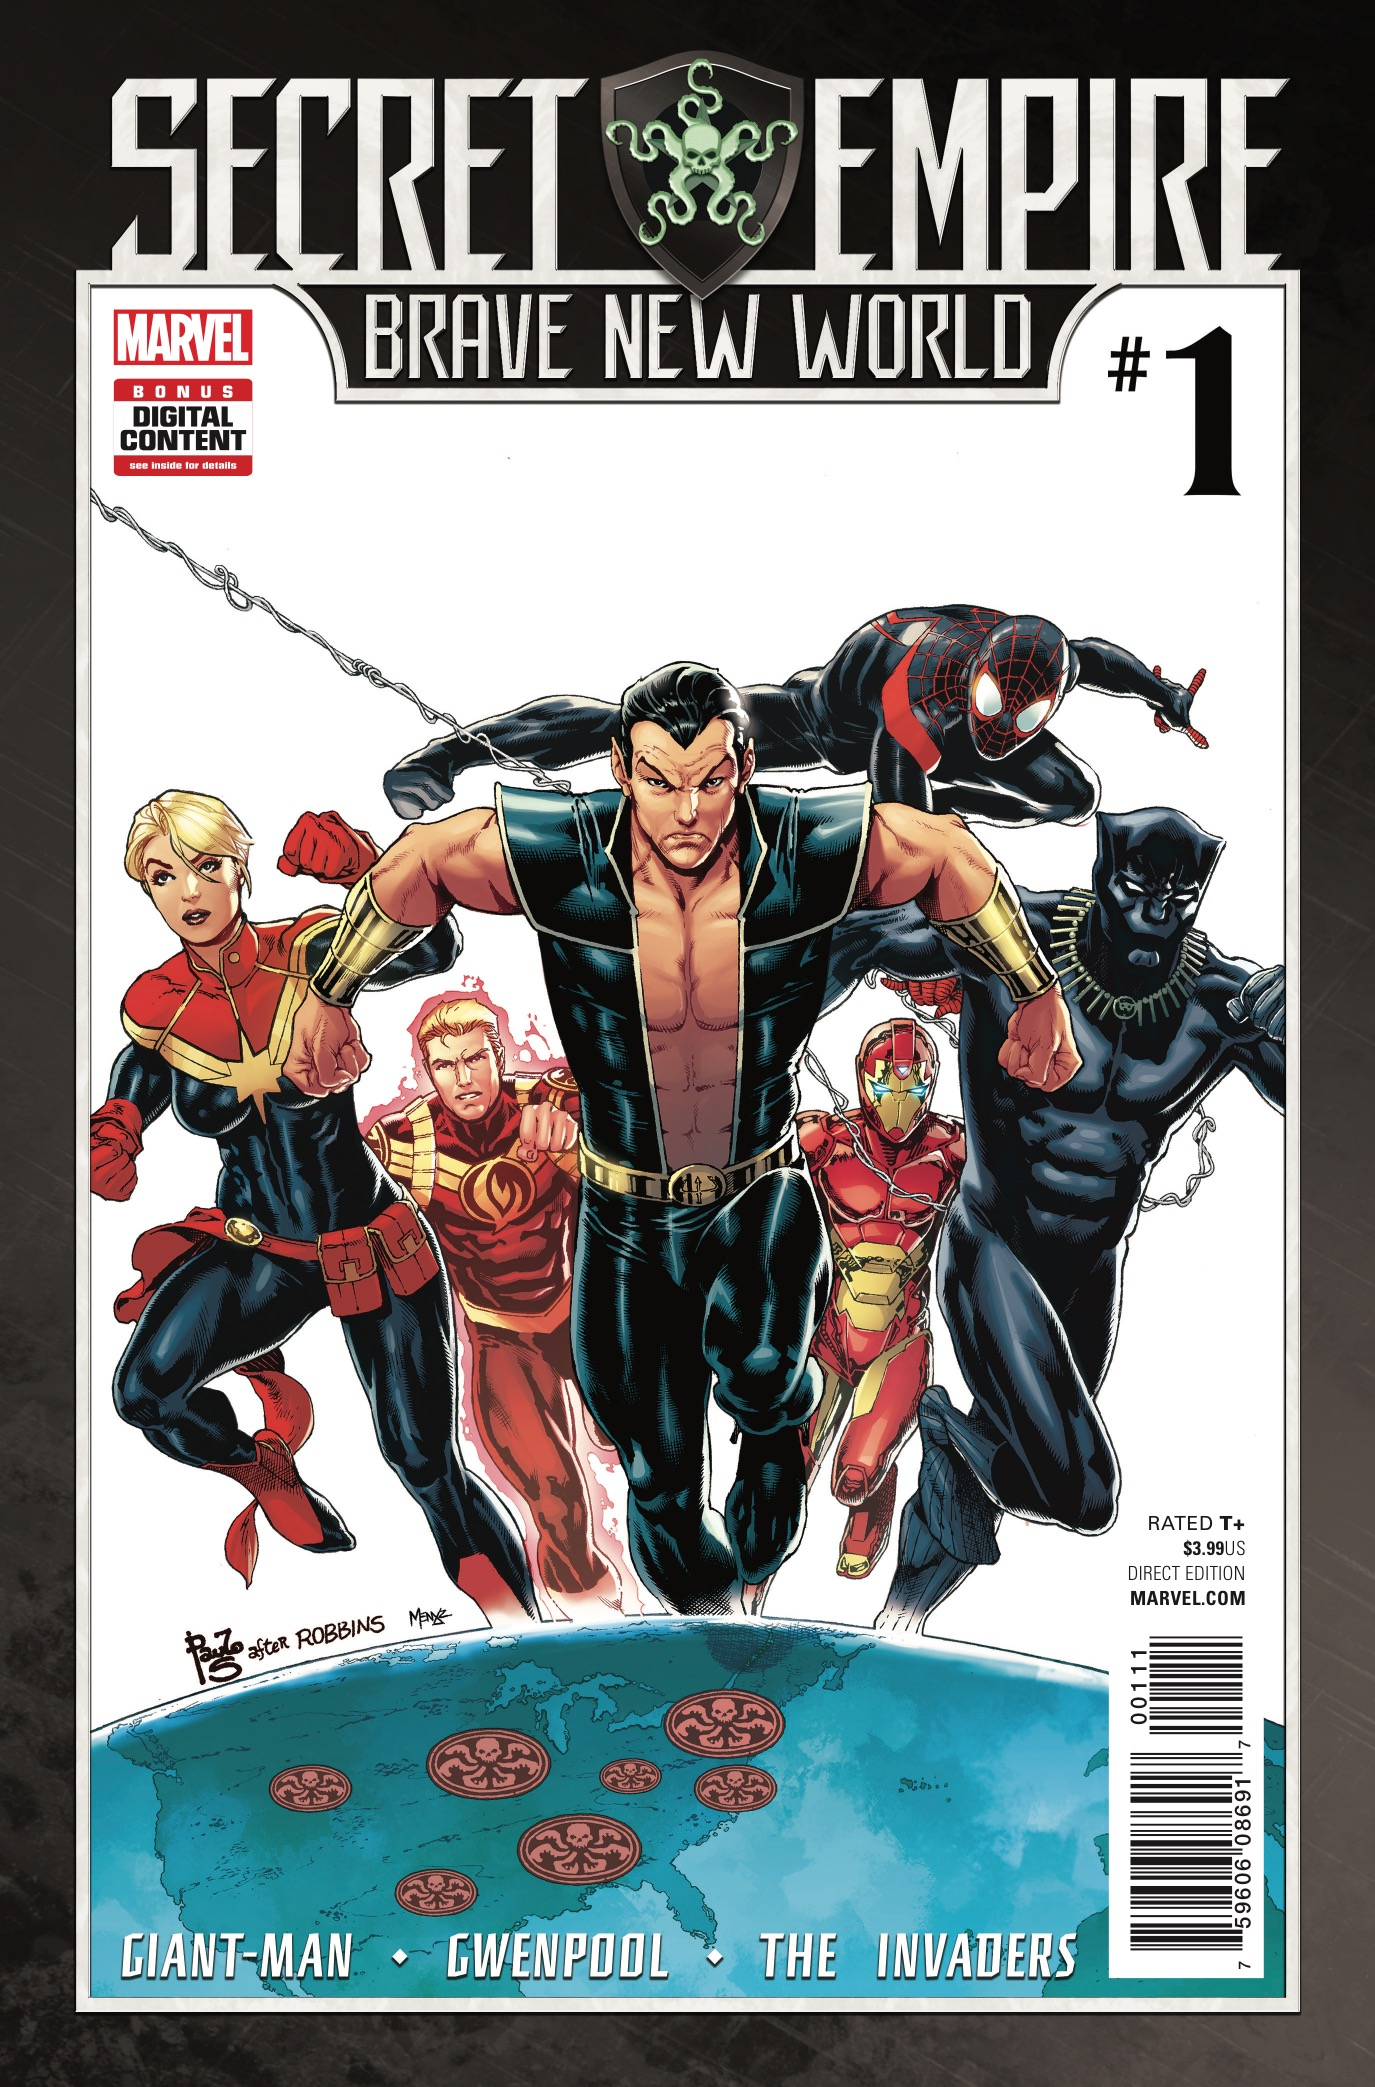 It is a new America, one that secures peace through strength! You will obey and you WILL read this event tie-in anthology book, Secret Empire: Brave New World #1! It doesn't matter if it's good!!! But is it?